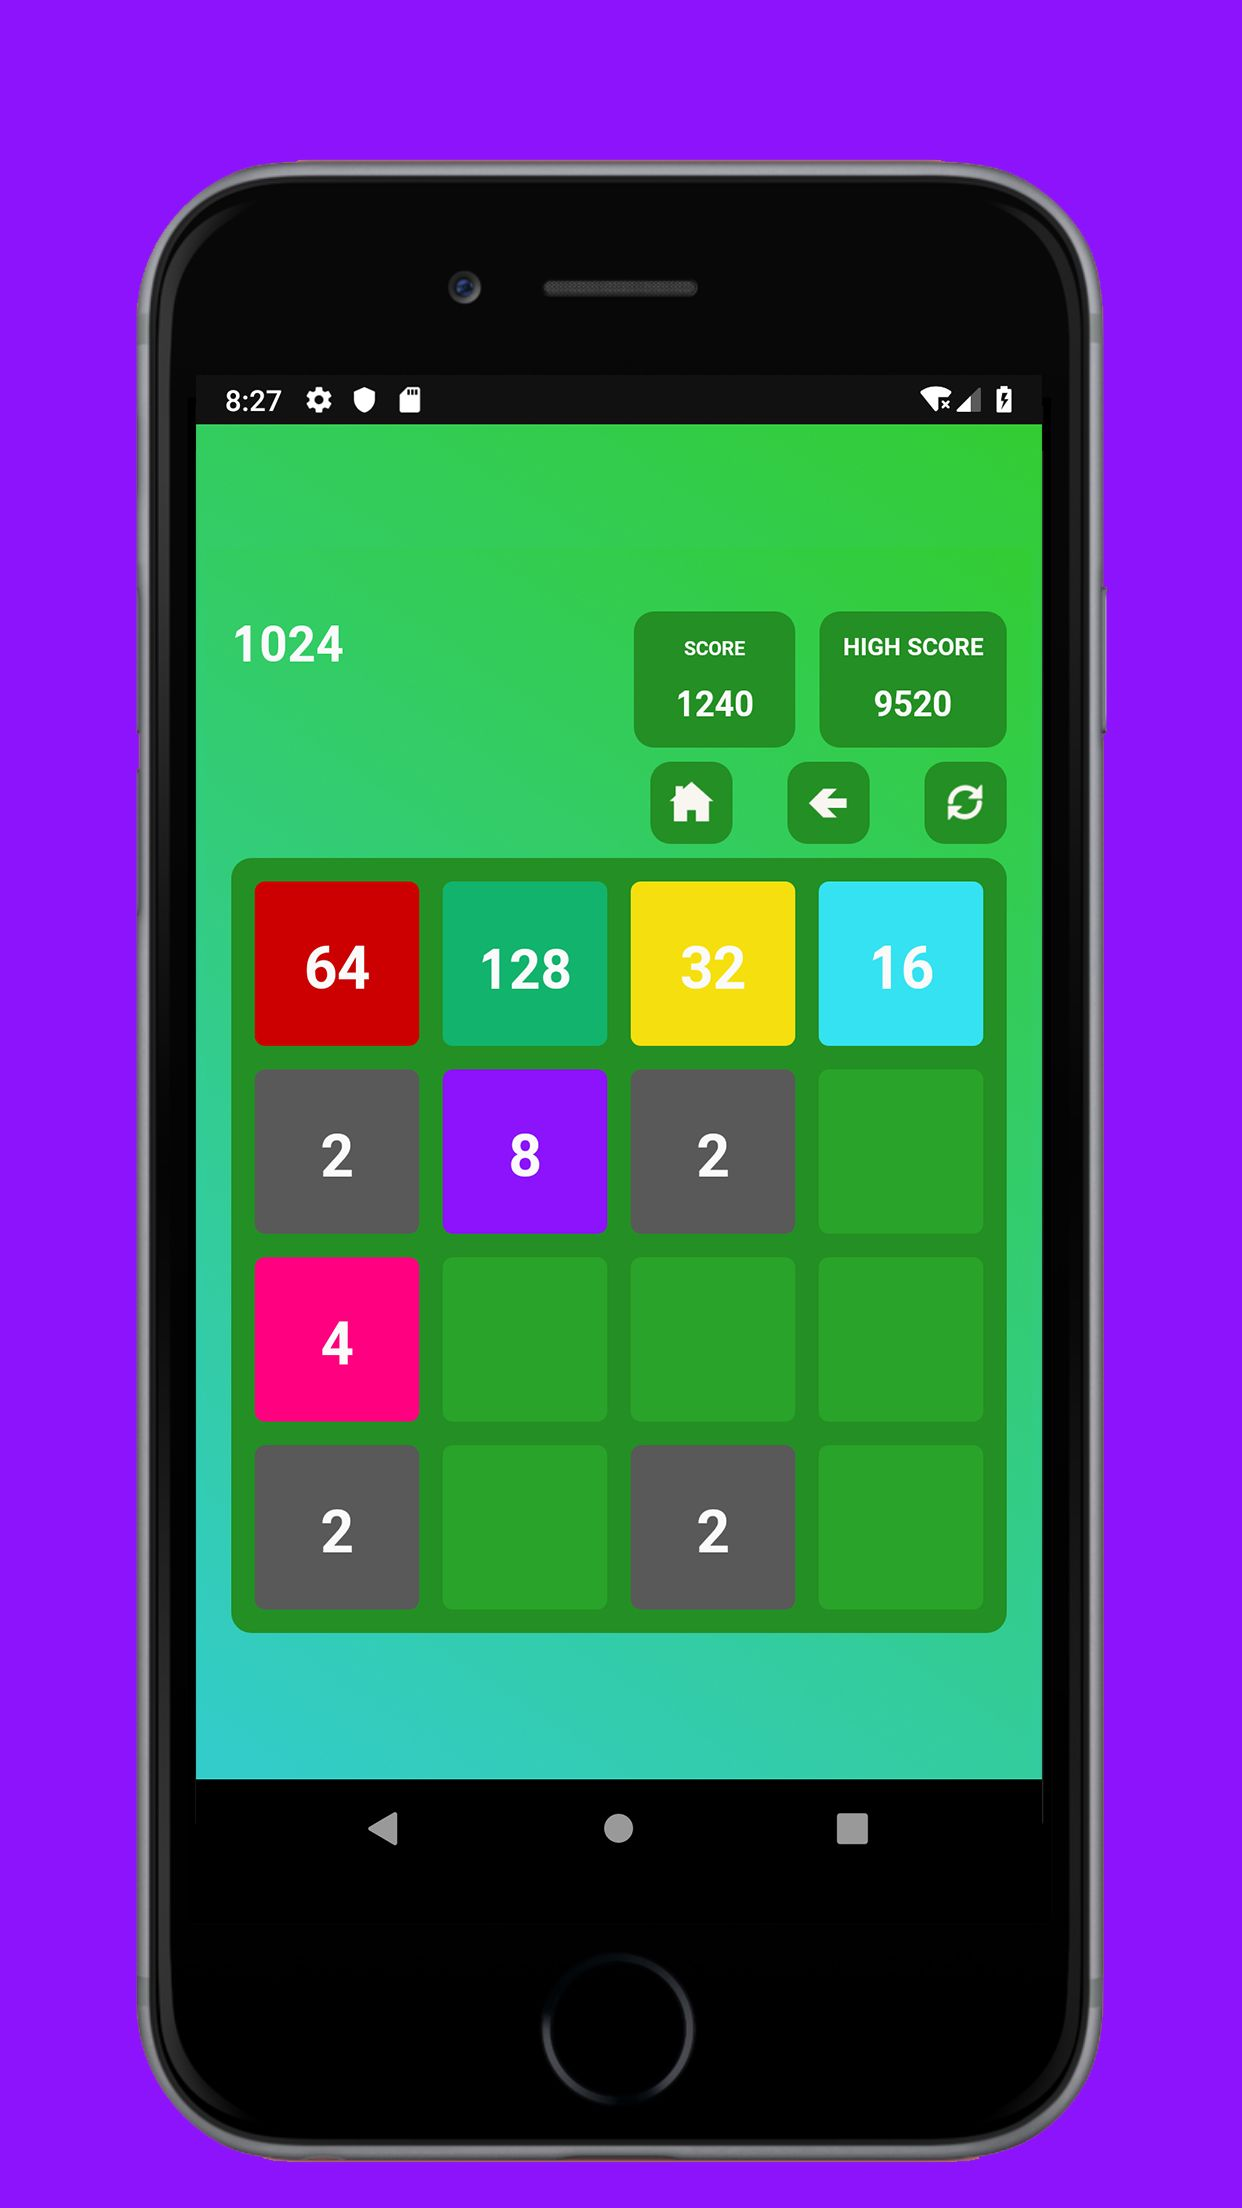 Swipe Game Version Basic - Android Template Screenshot 2